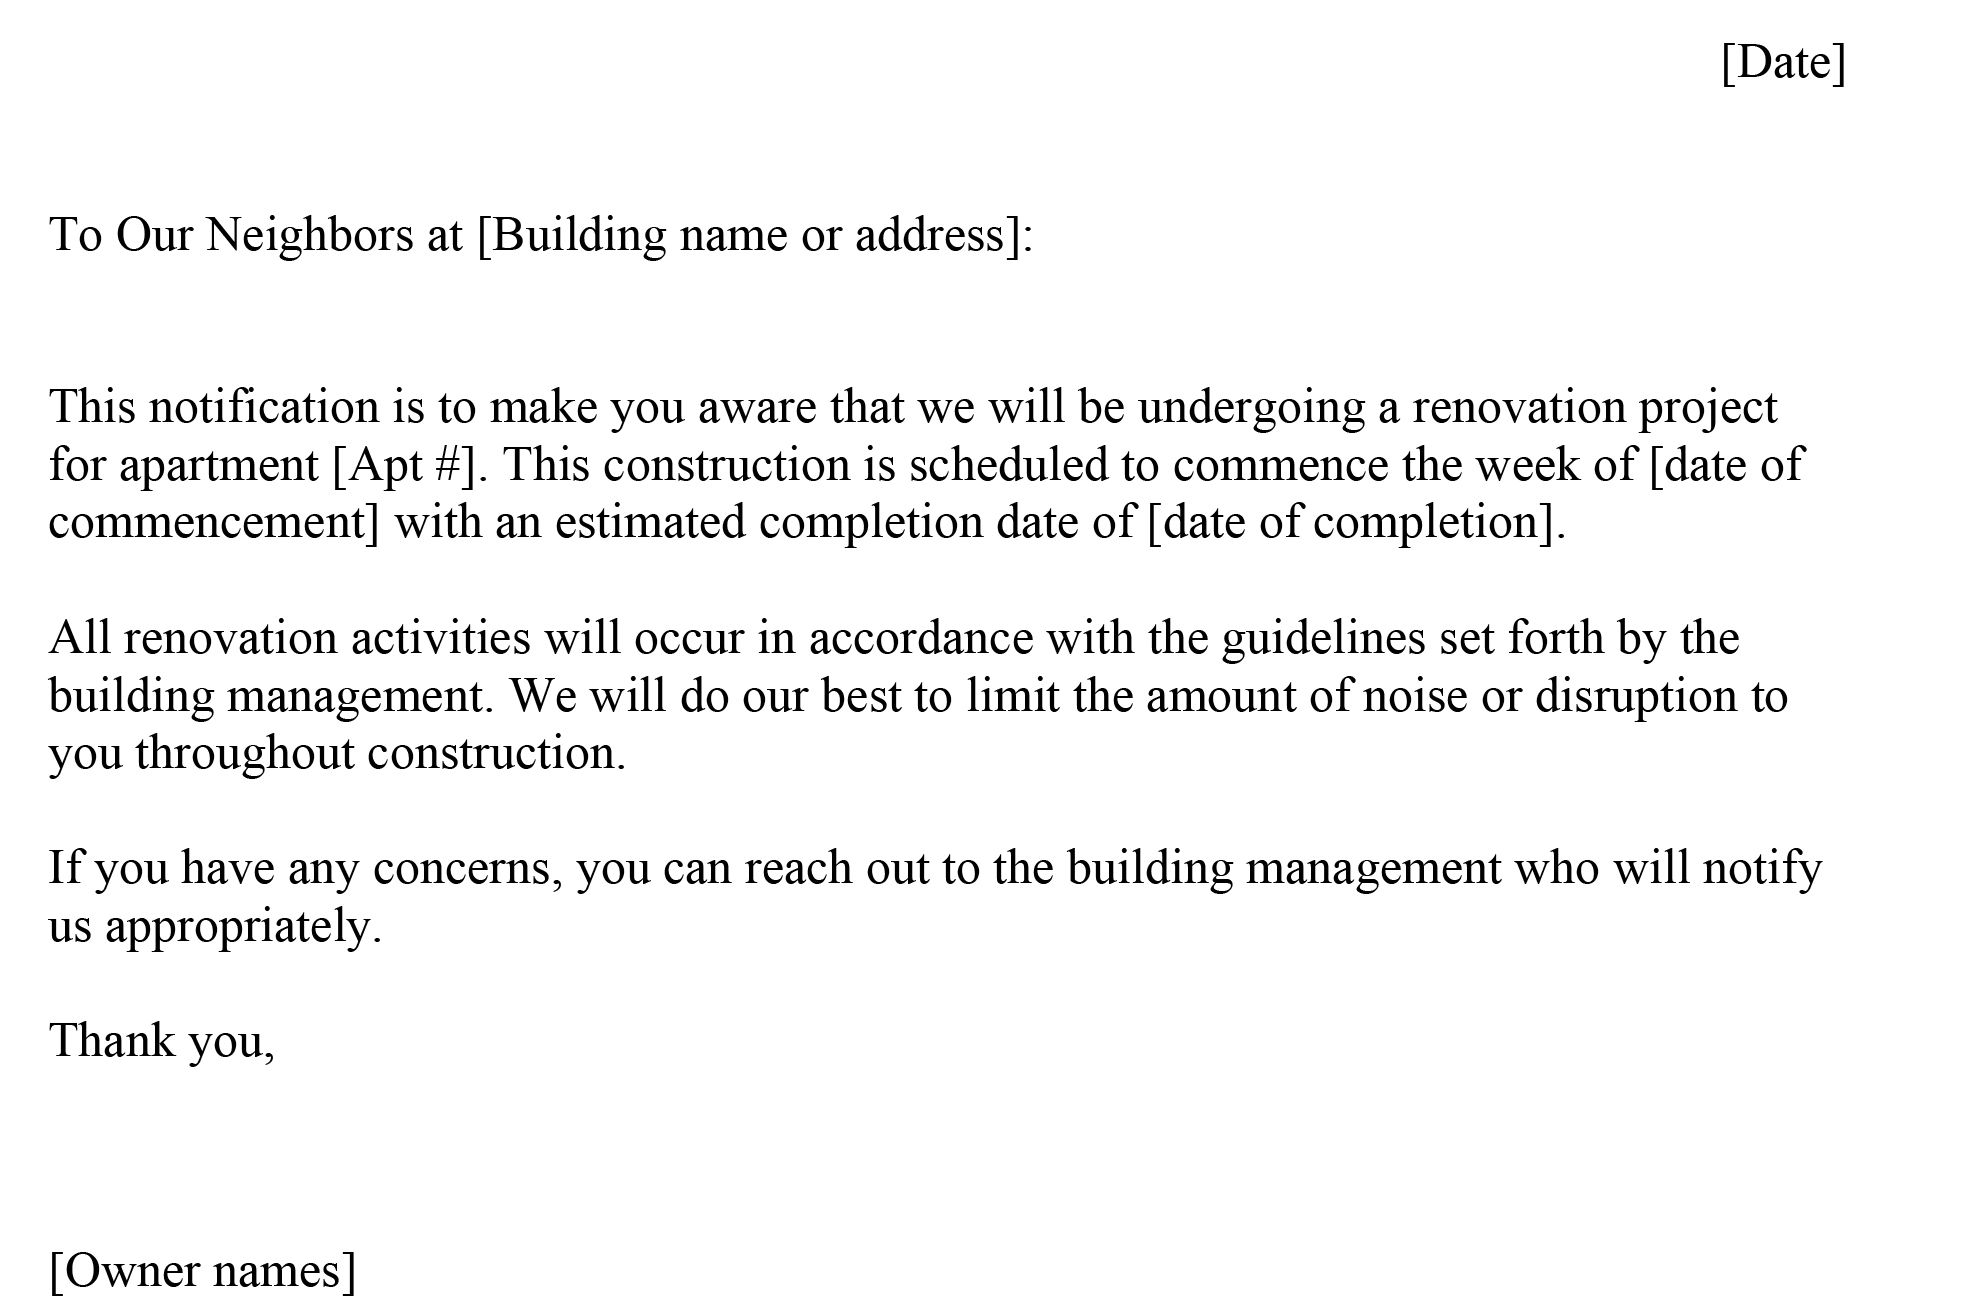 renovation letters to neighbors 3 reallife examples sample resume for computer science fresh graduate format in ms word career objective security guard